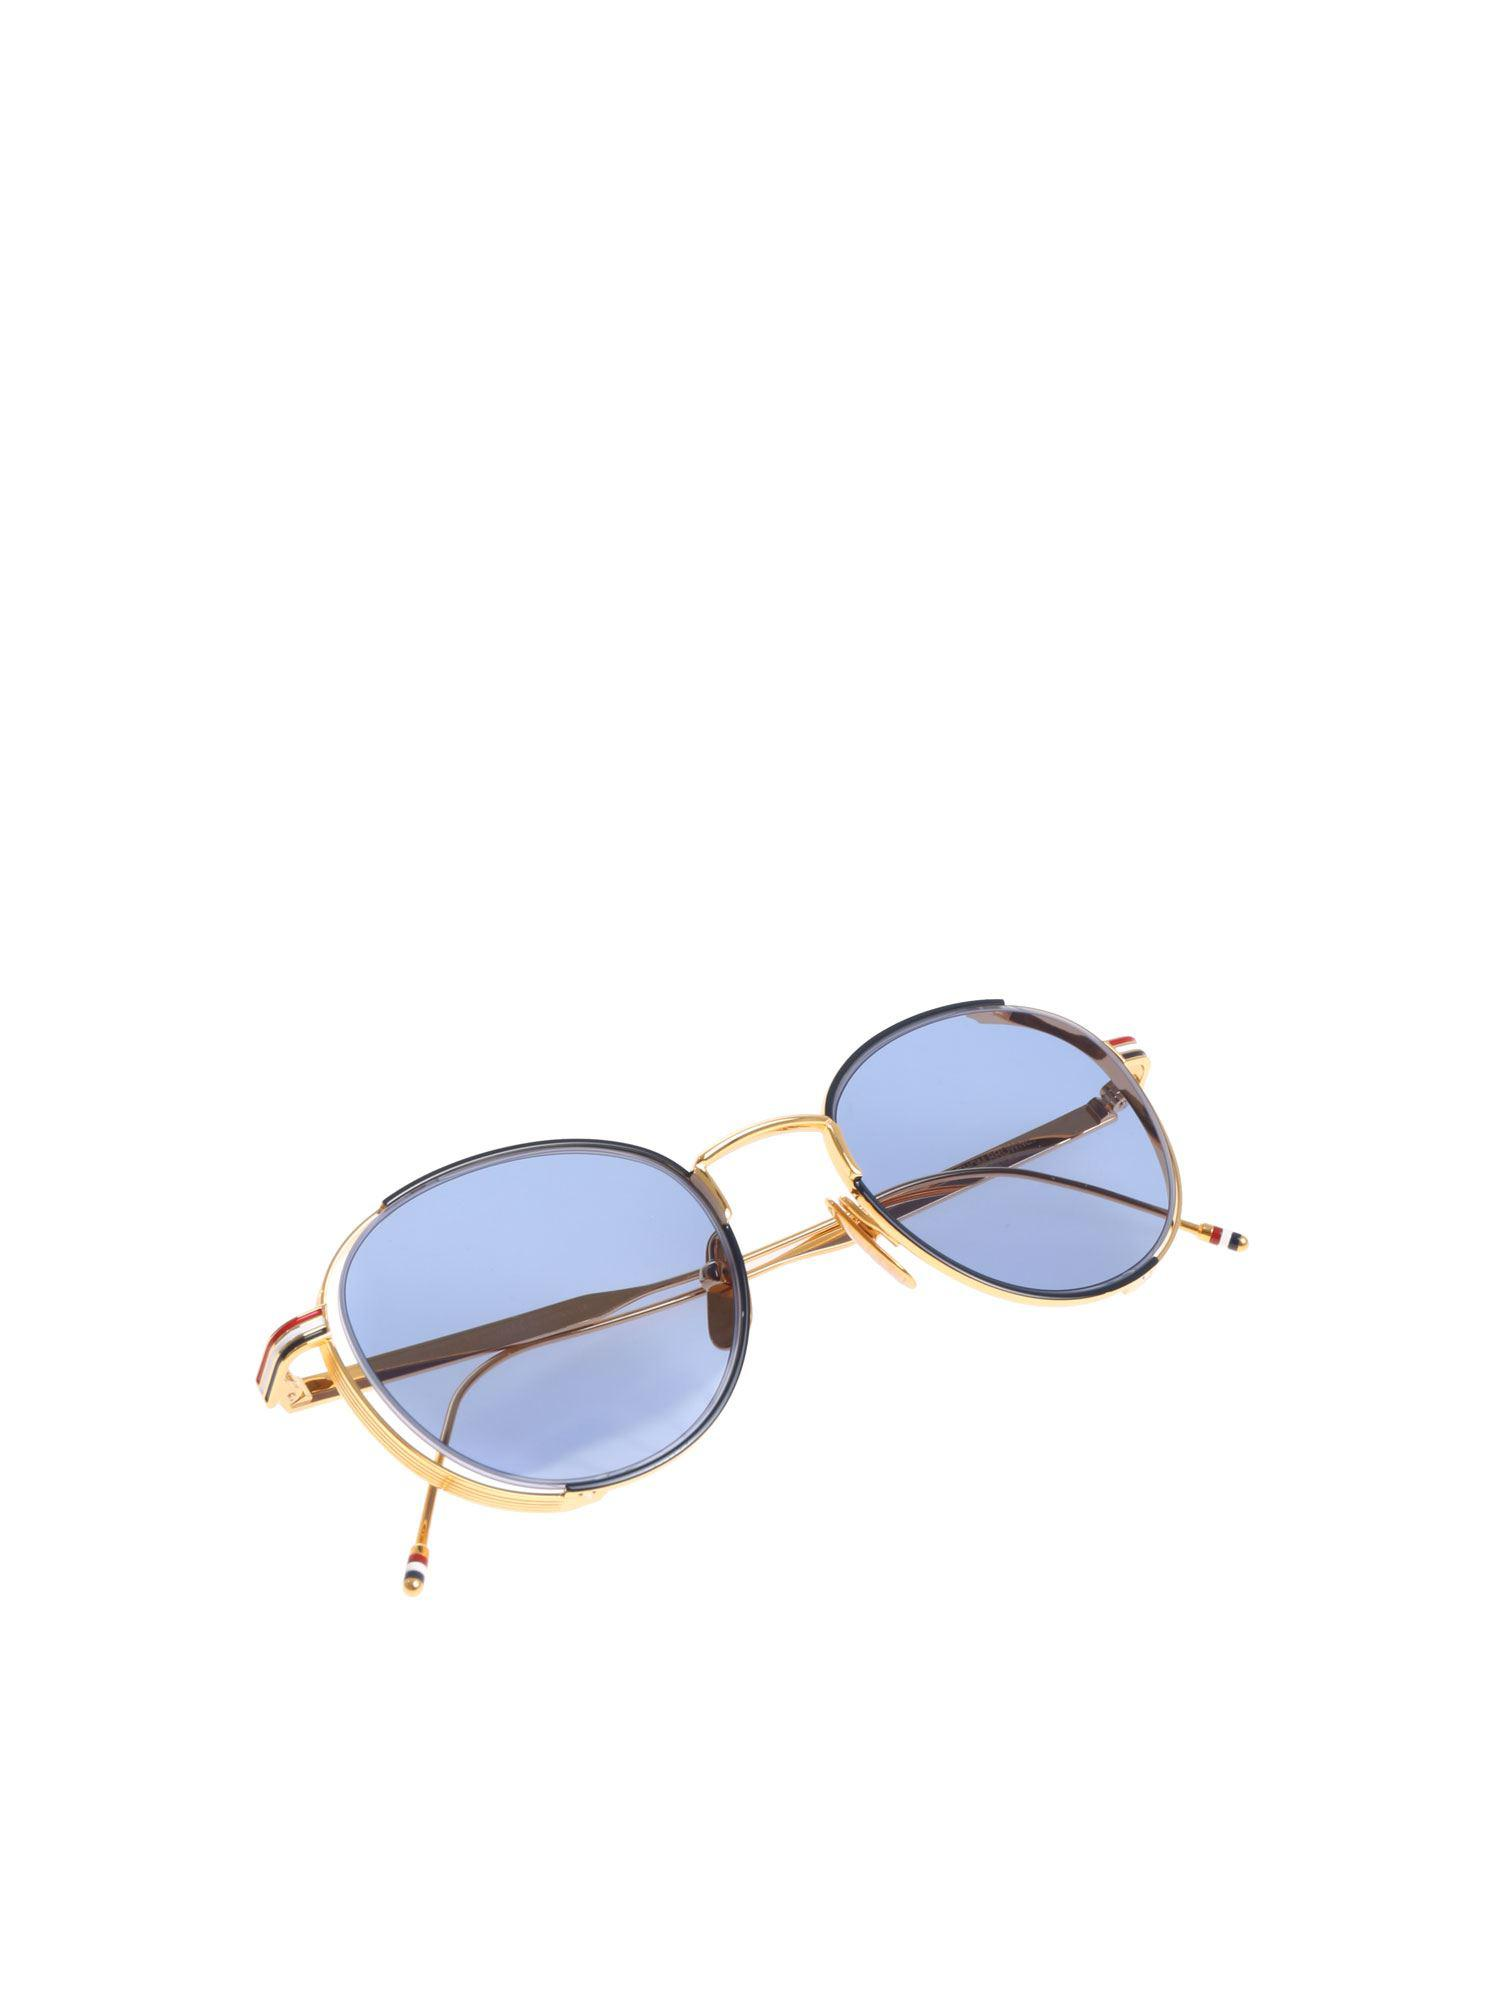 98620b8fda76 Thom Browne Golden Sunglasses With Blue Lens in Blue - Lyst